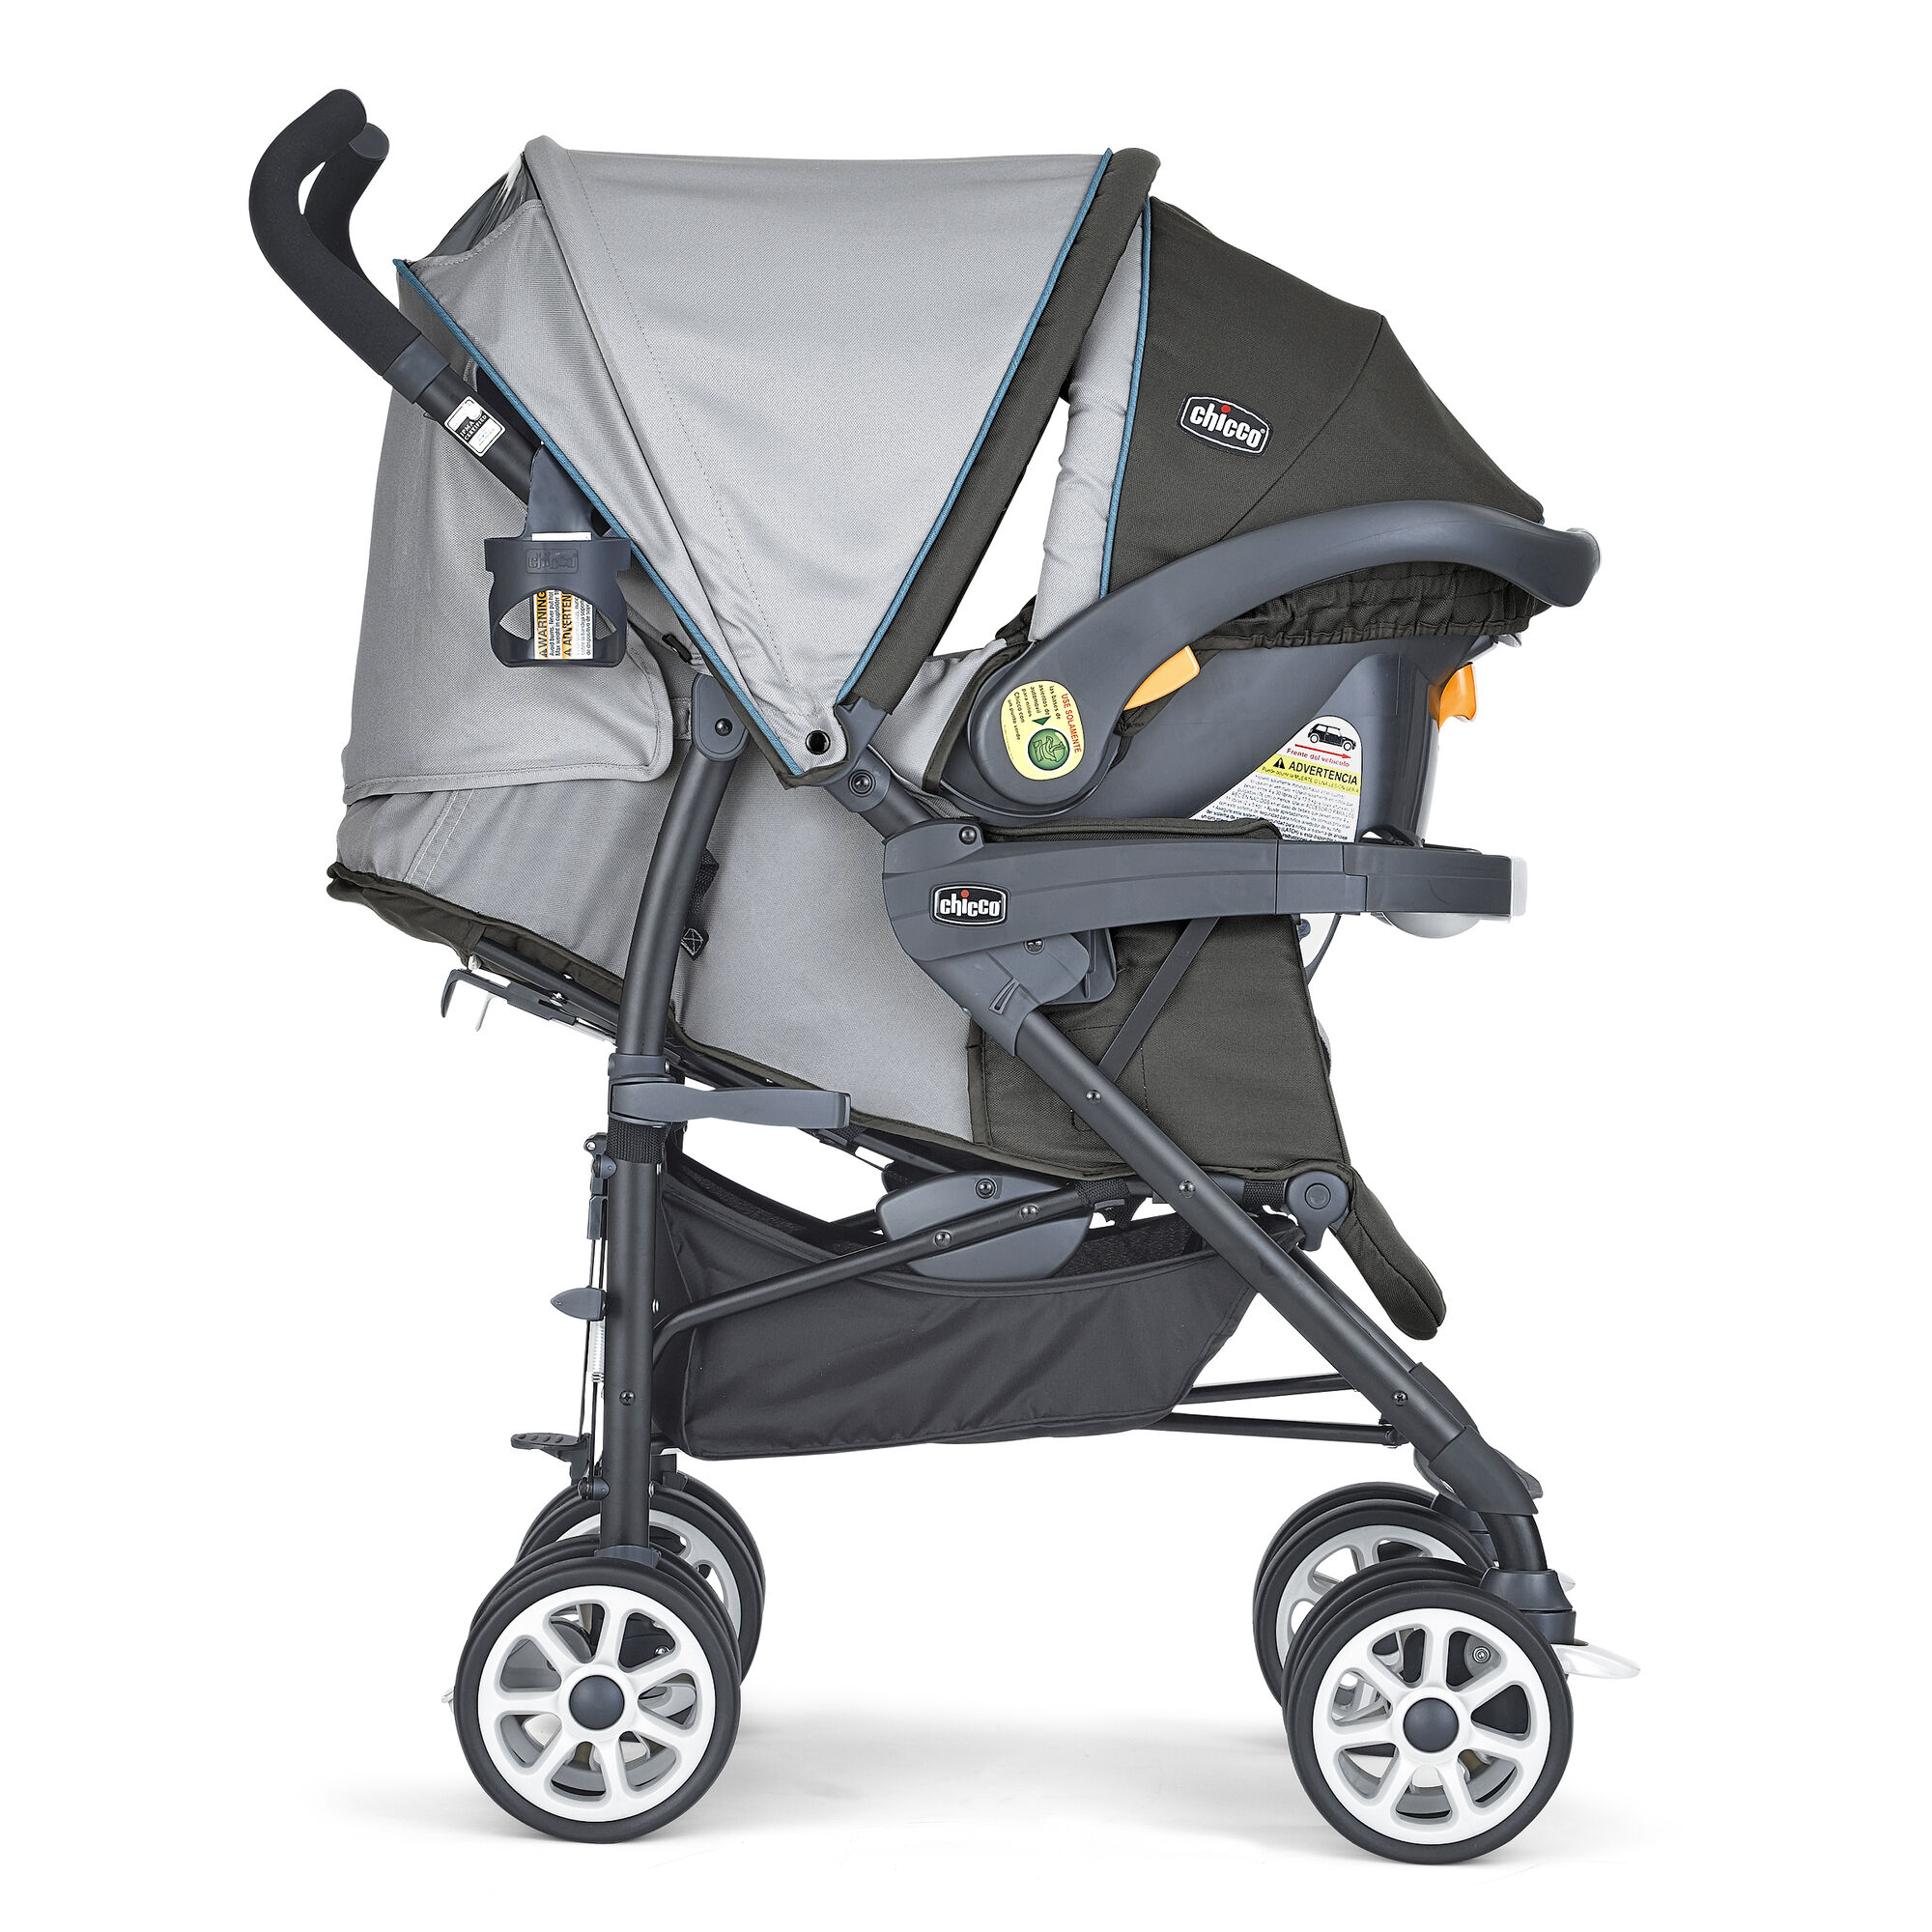 8151f680e ... Chicco Neuvo Stroller and KeyFit 30 Infant Car Seat come together to  form the Chicco Nuevo ...